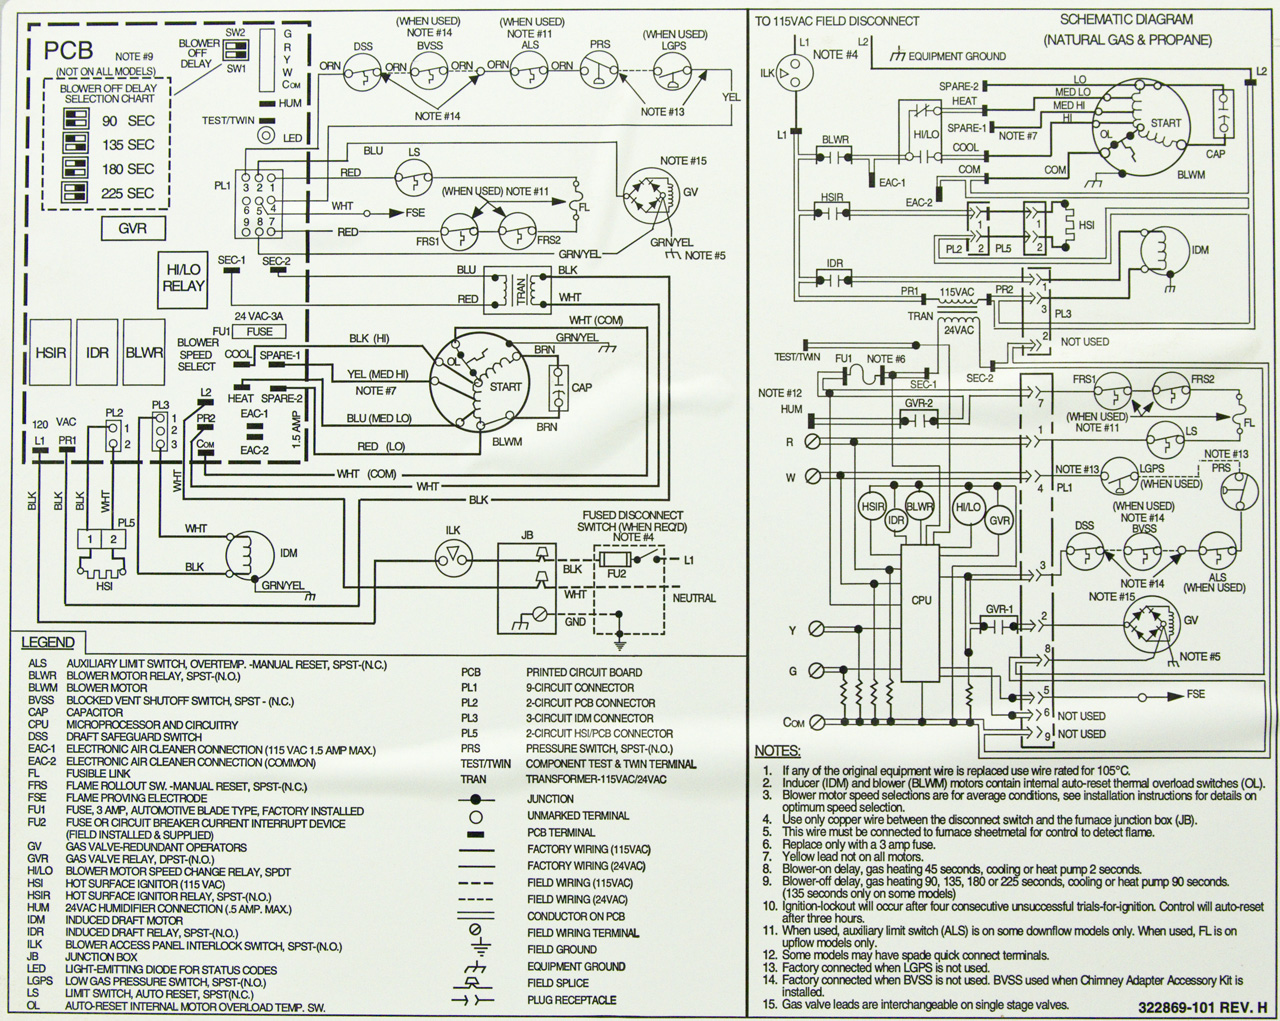 Carrier Furnace Wiring Diagrams - 2003 Chevy Impala Headlight Wiring Diagram  for Wiring Diagram Schematics